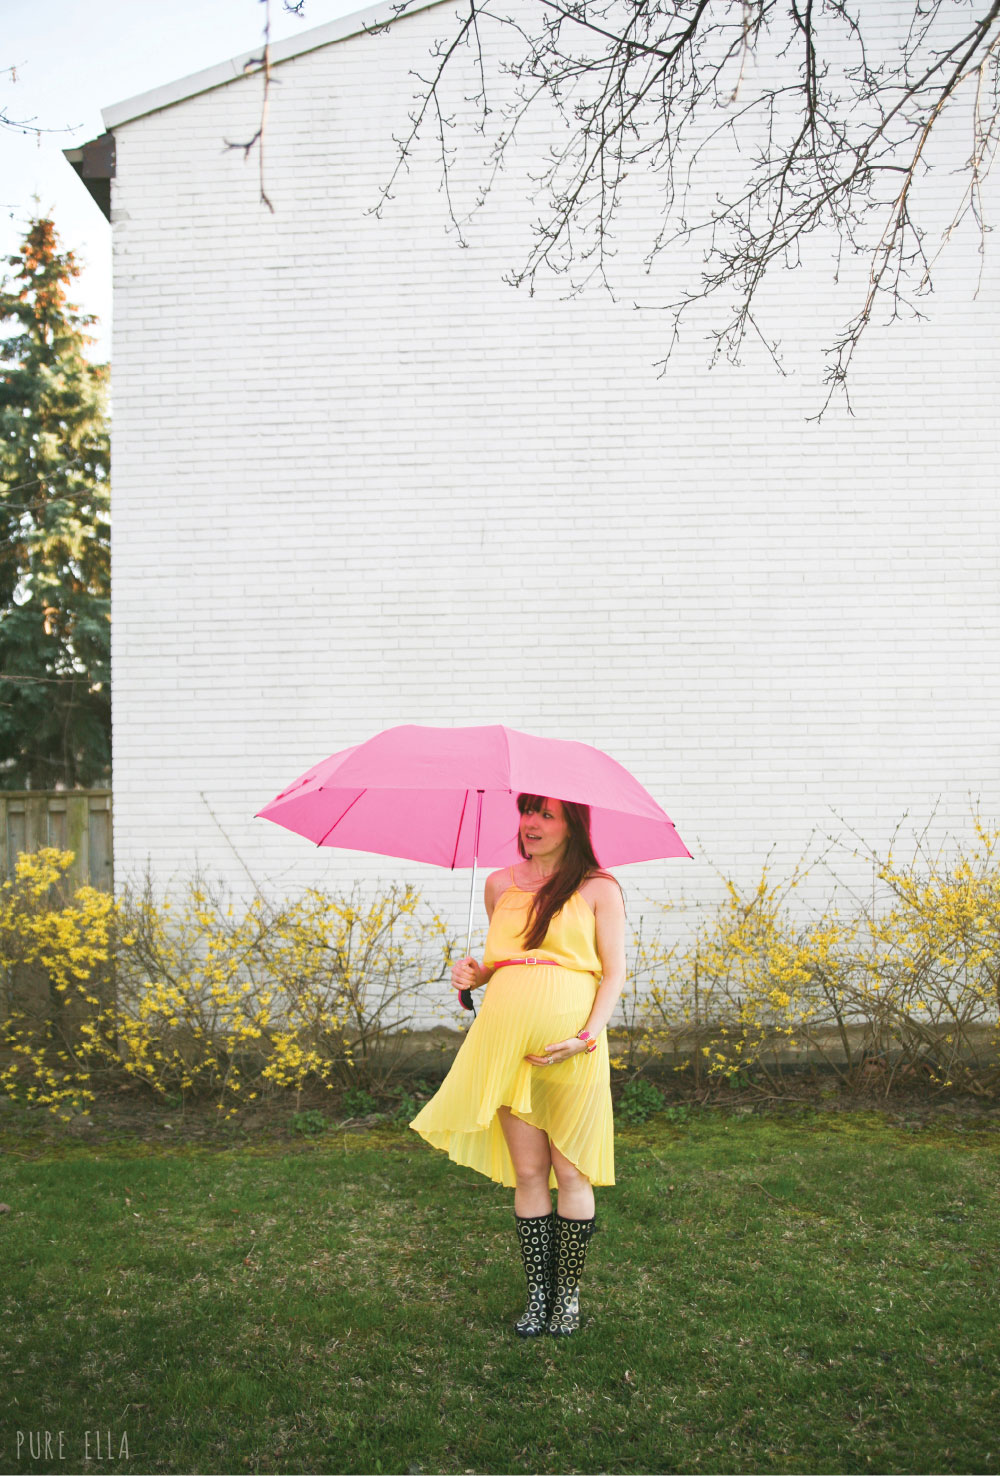 Pure-Ella-Pregancy-Photography-yellow-dress-with-umbrella2